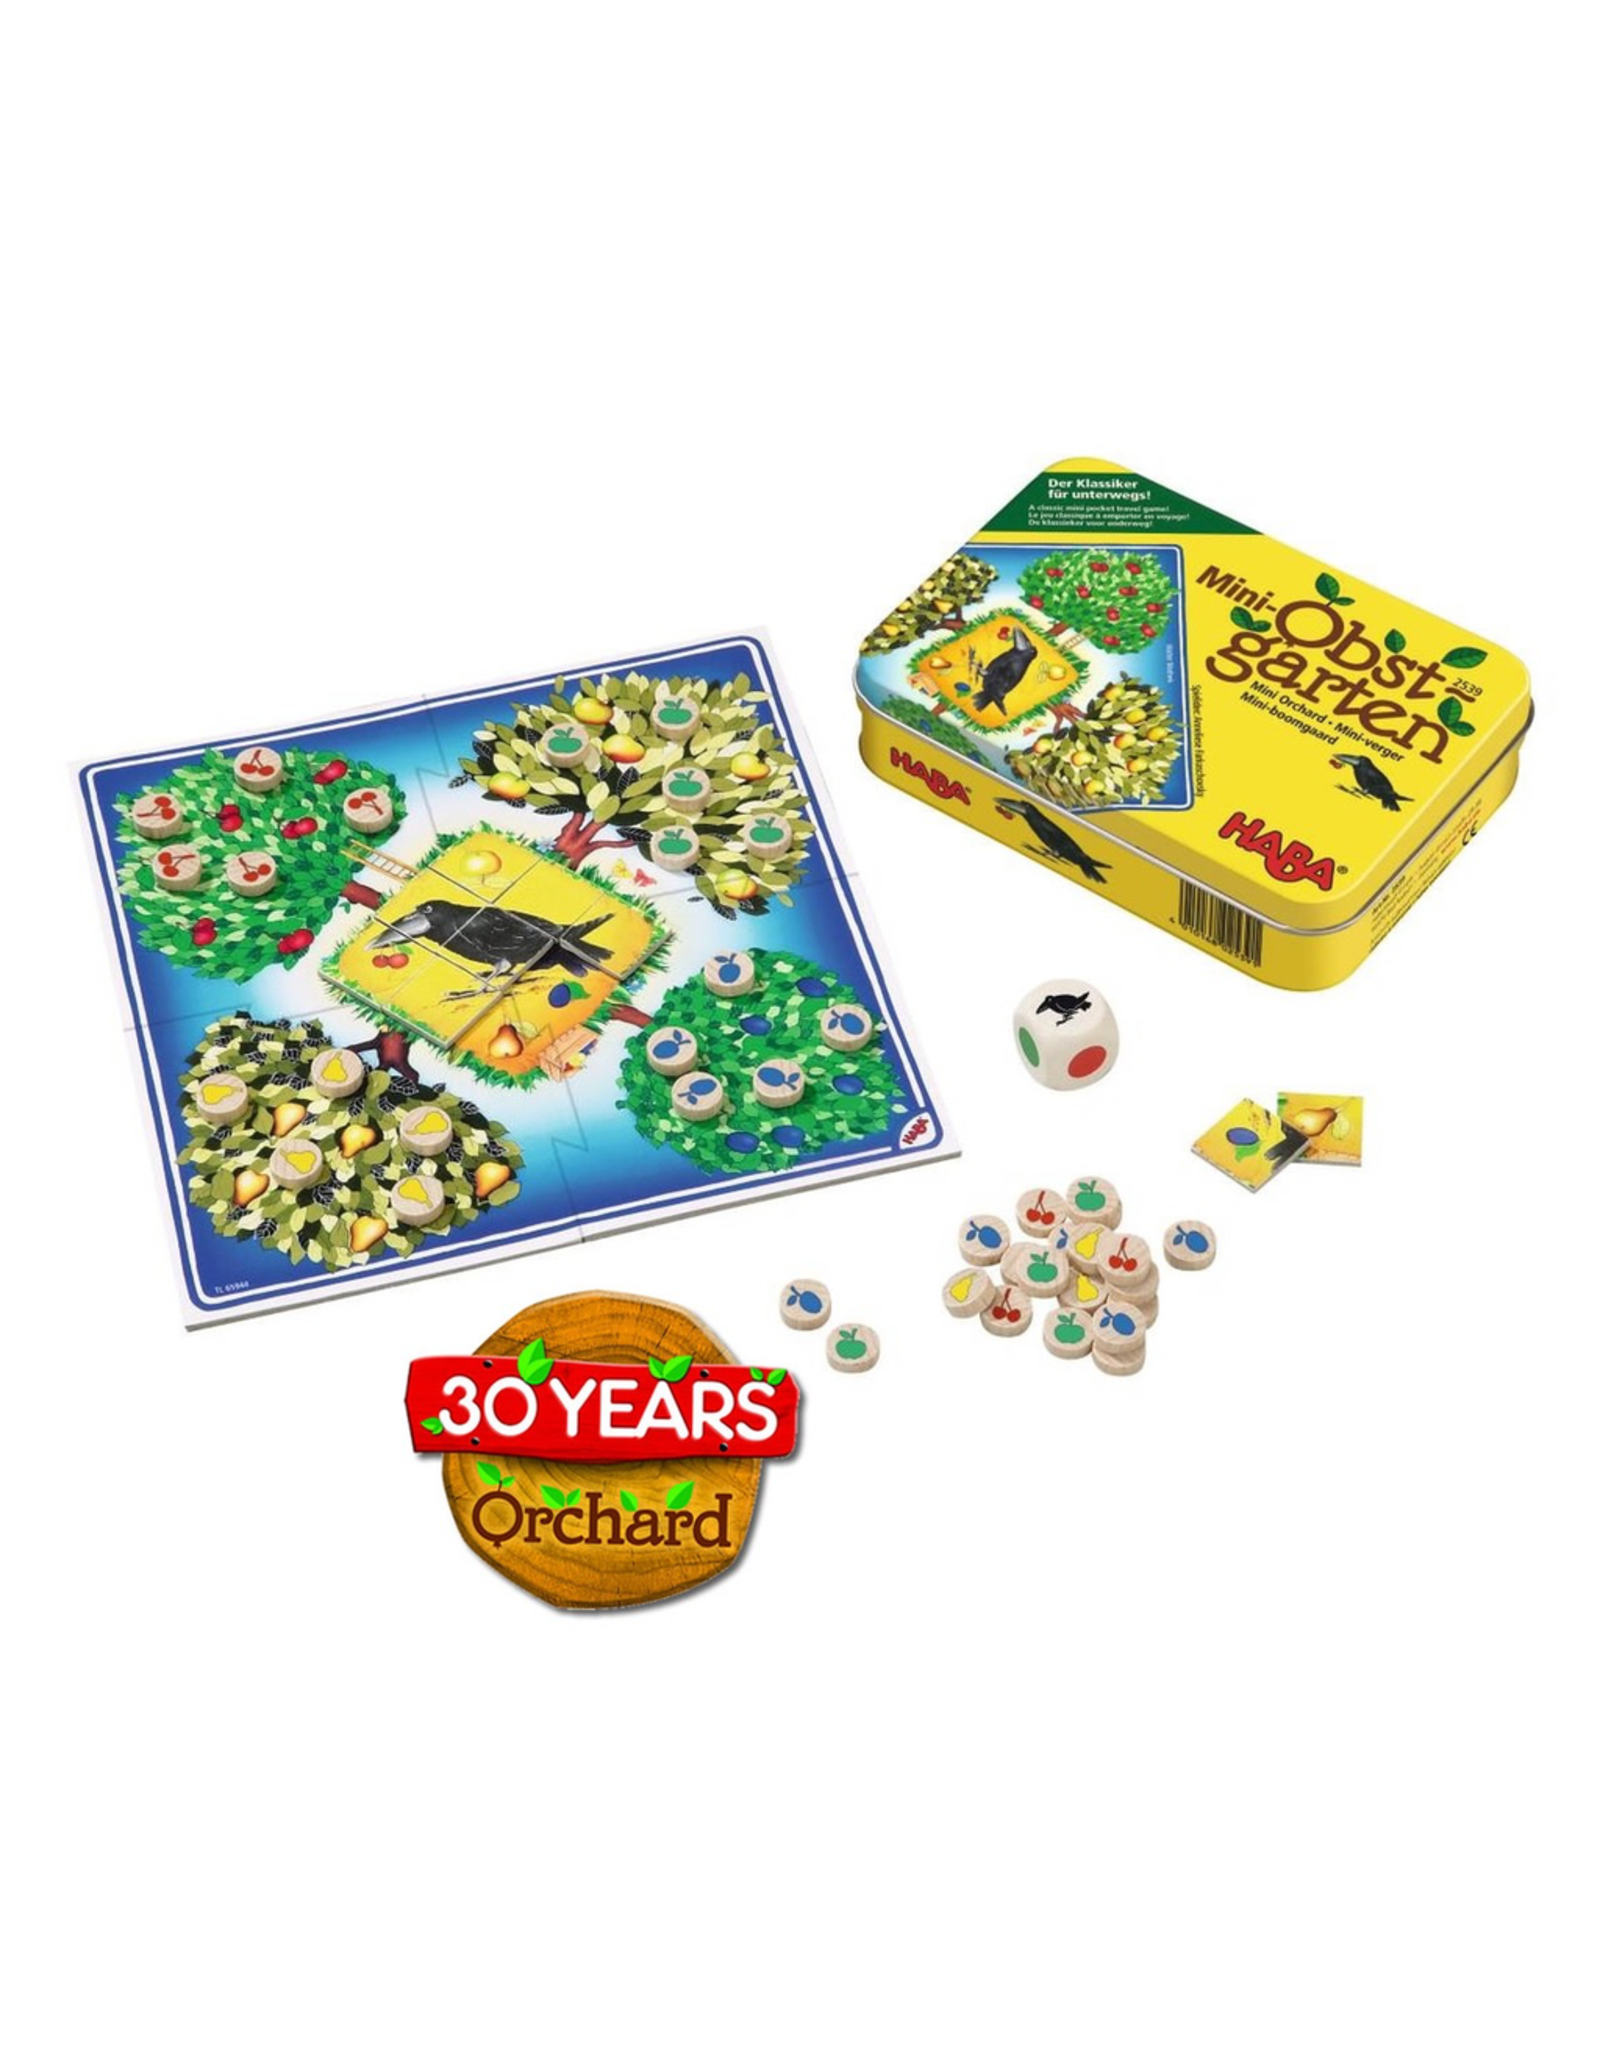 HABA MINI-ORCHARD